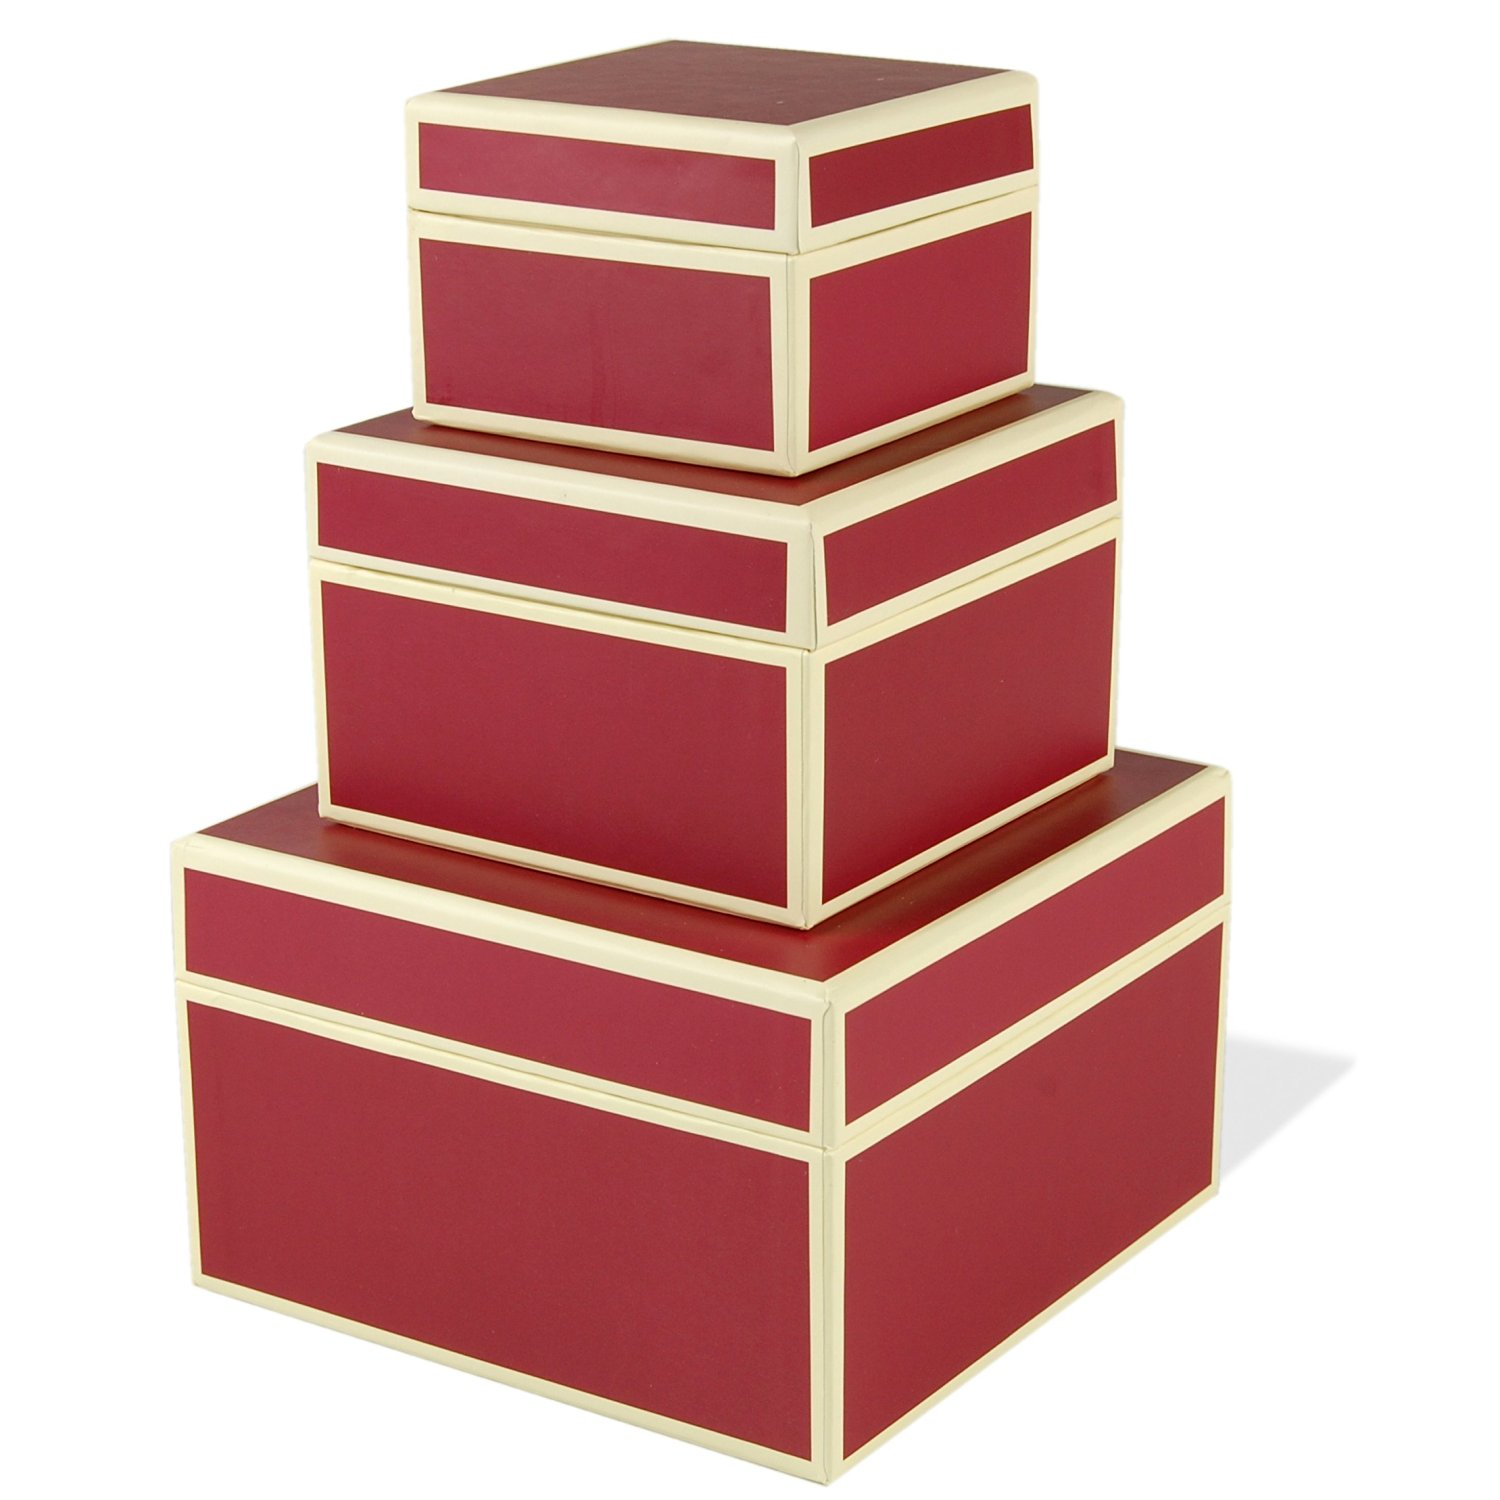 Set of 3 rectangular boxes bordeaux, large +++ STORAGE- or GIFT BOXES +++ Quality made by Semikolon